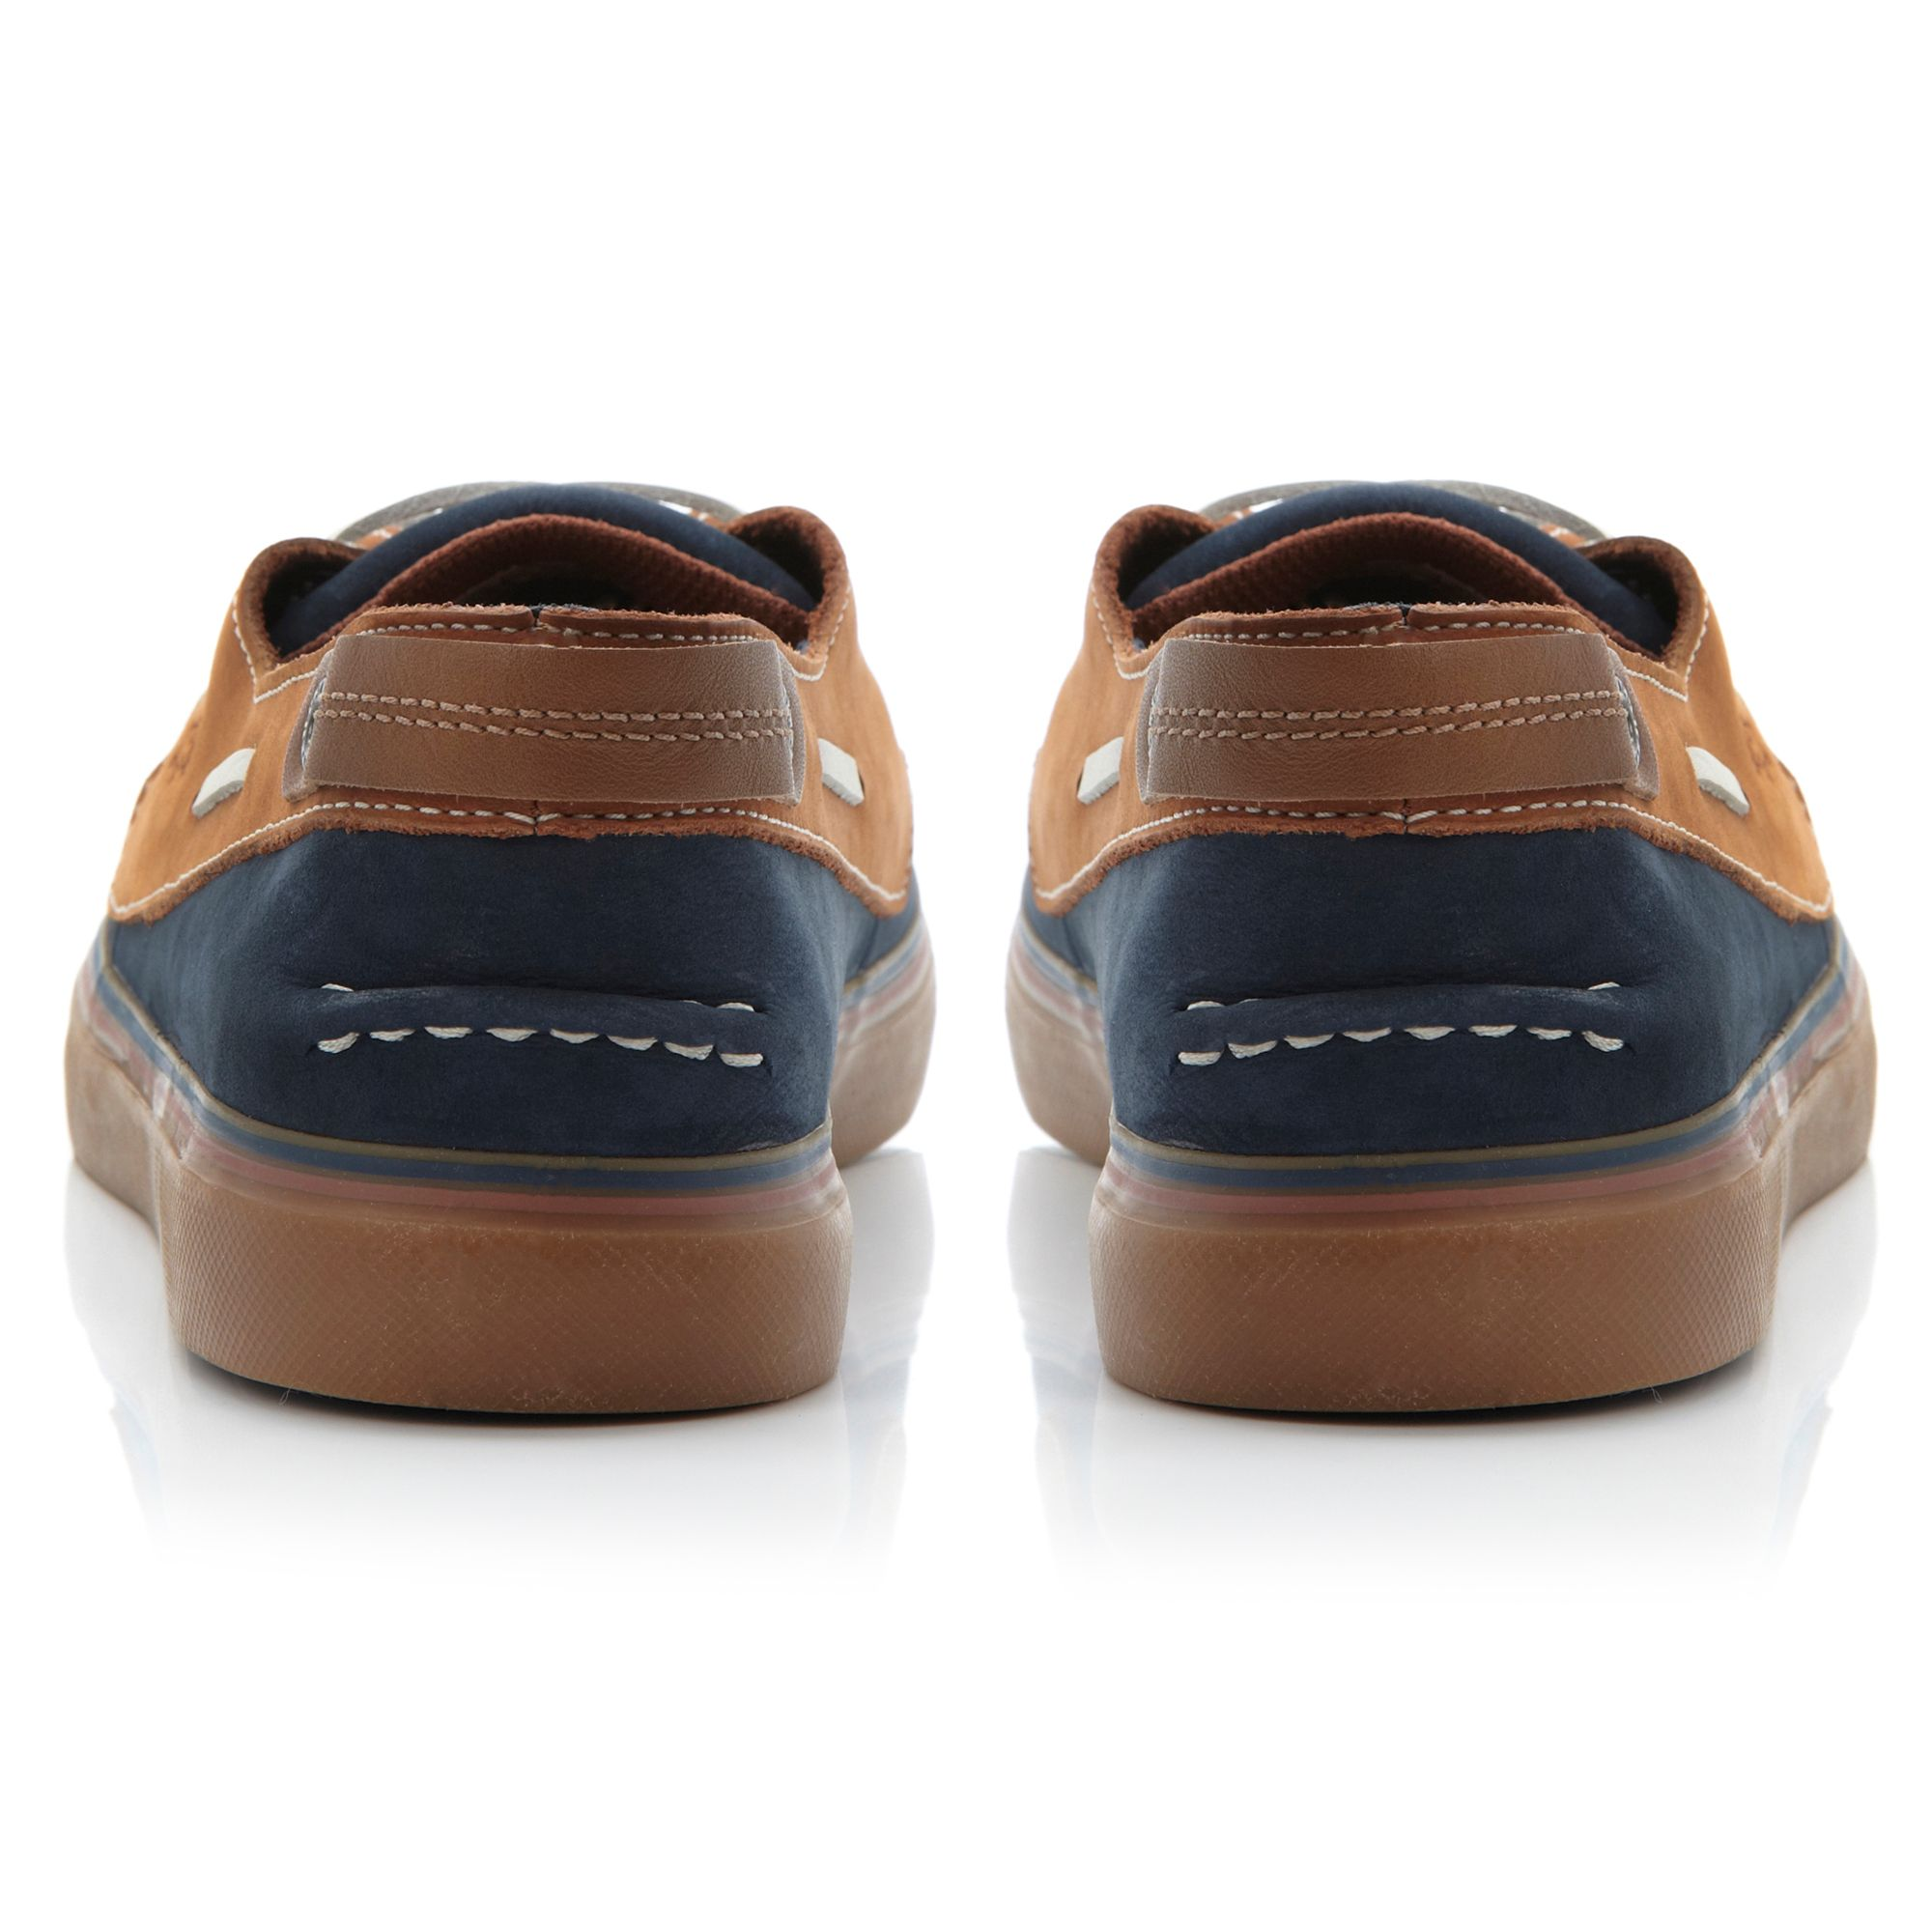 2013 new 2 color business casual boat shoes